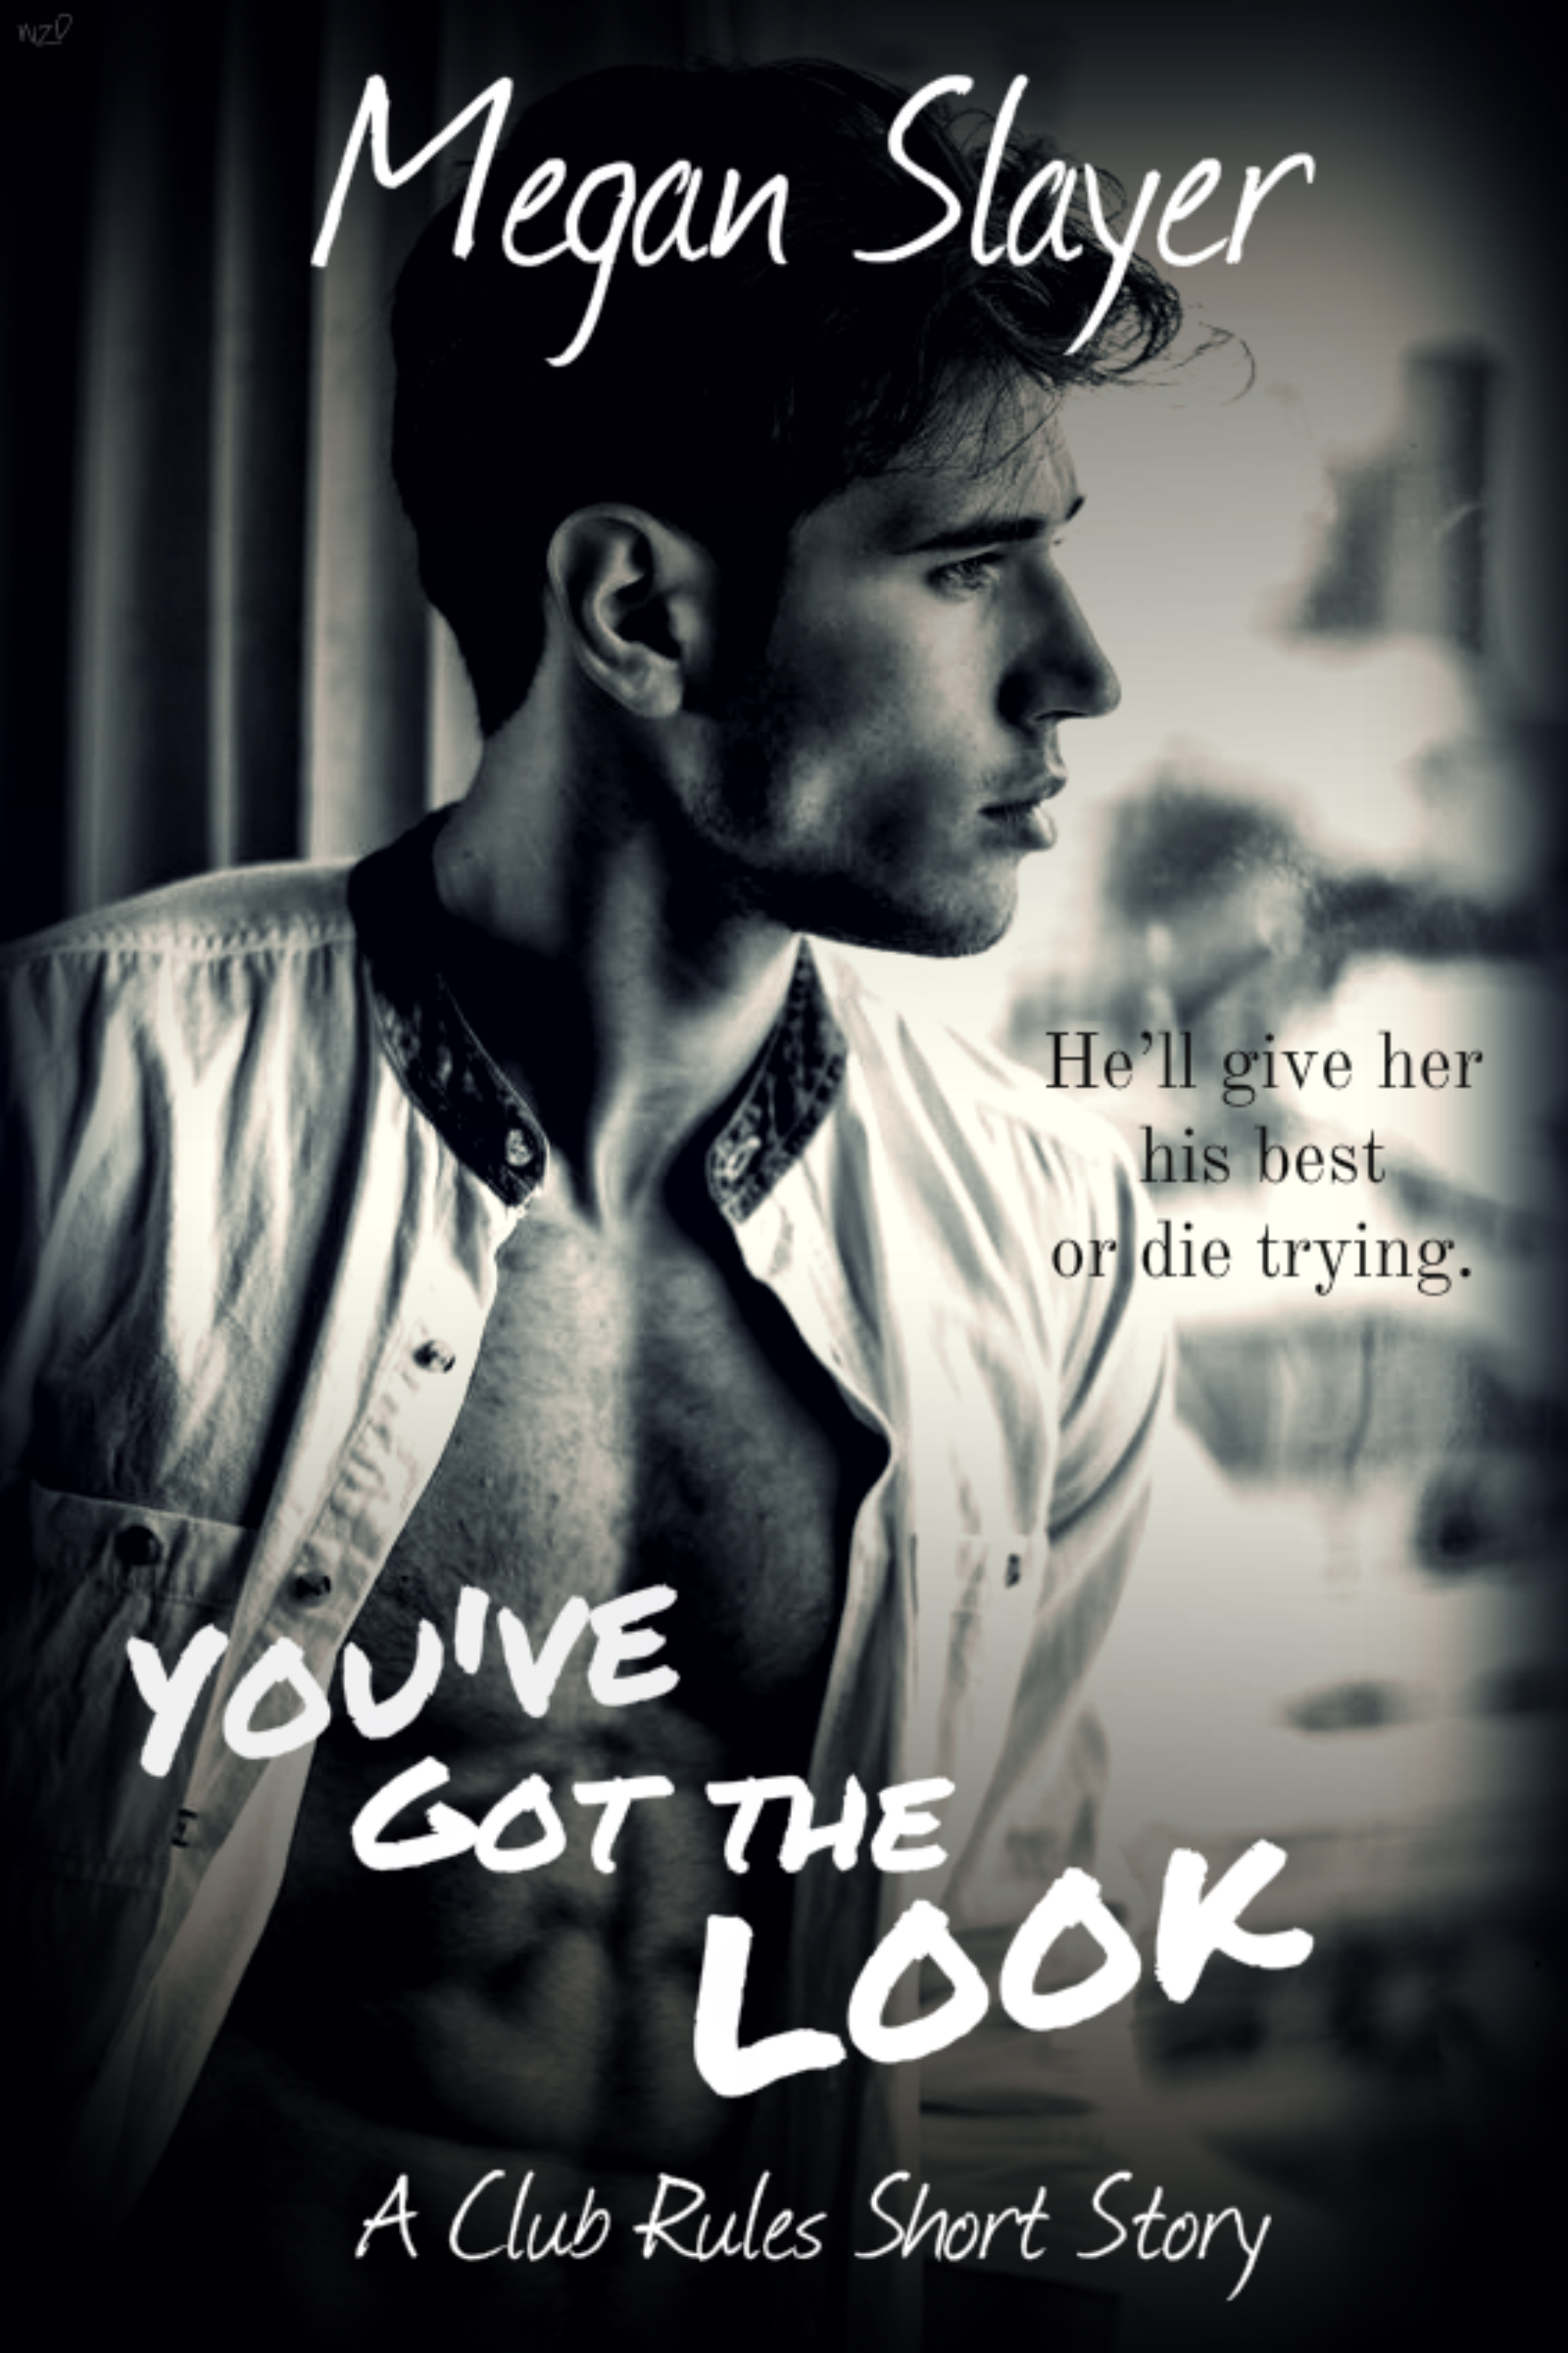 You've Got the Look COVER ART 2 LARGE